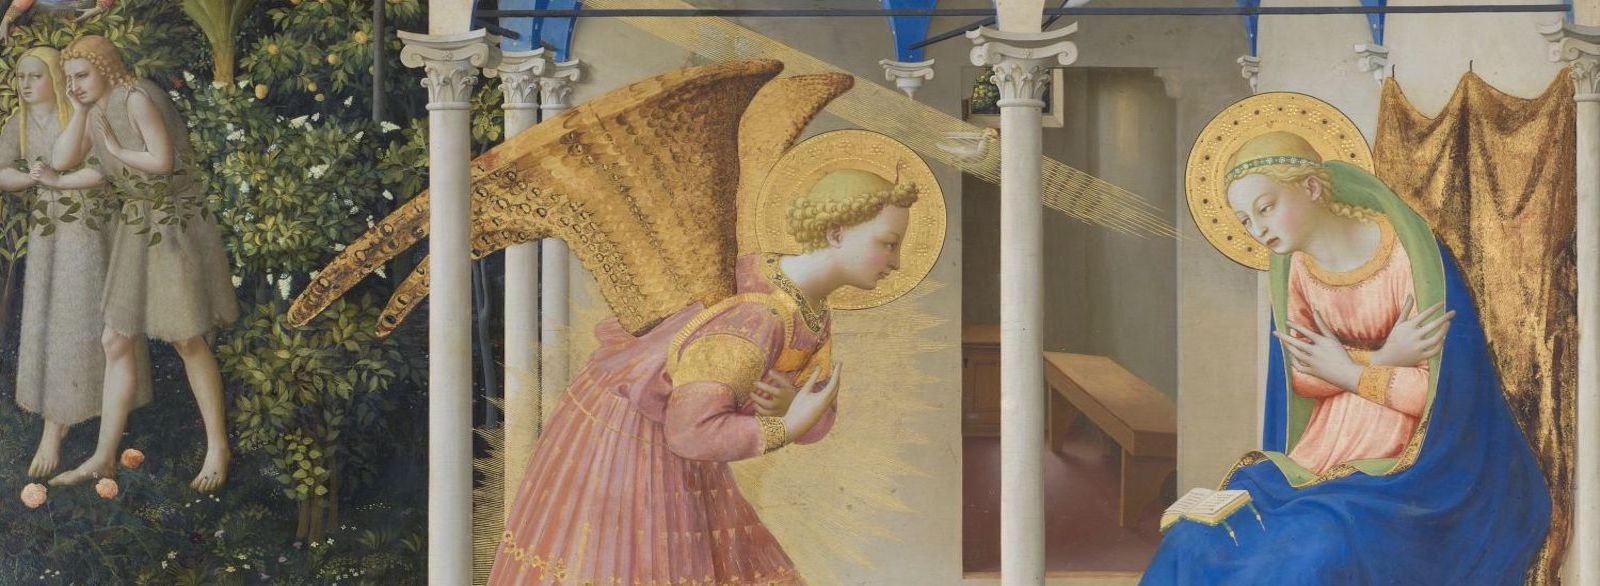 Help restore The Annunciation masterpiece